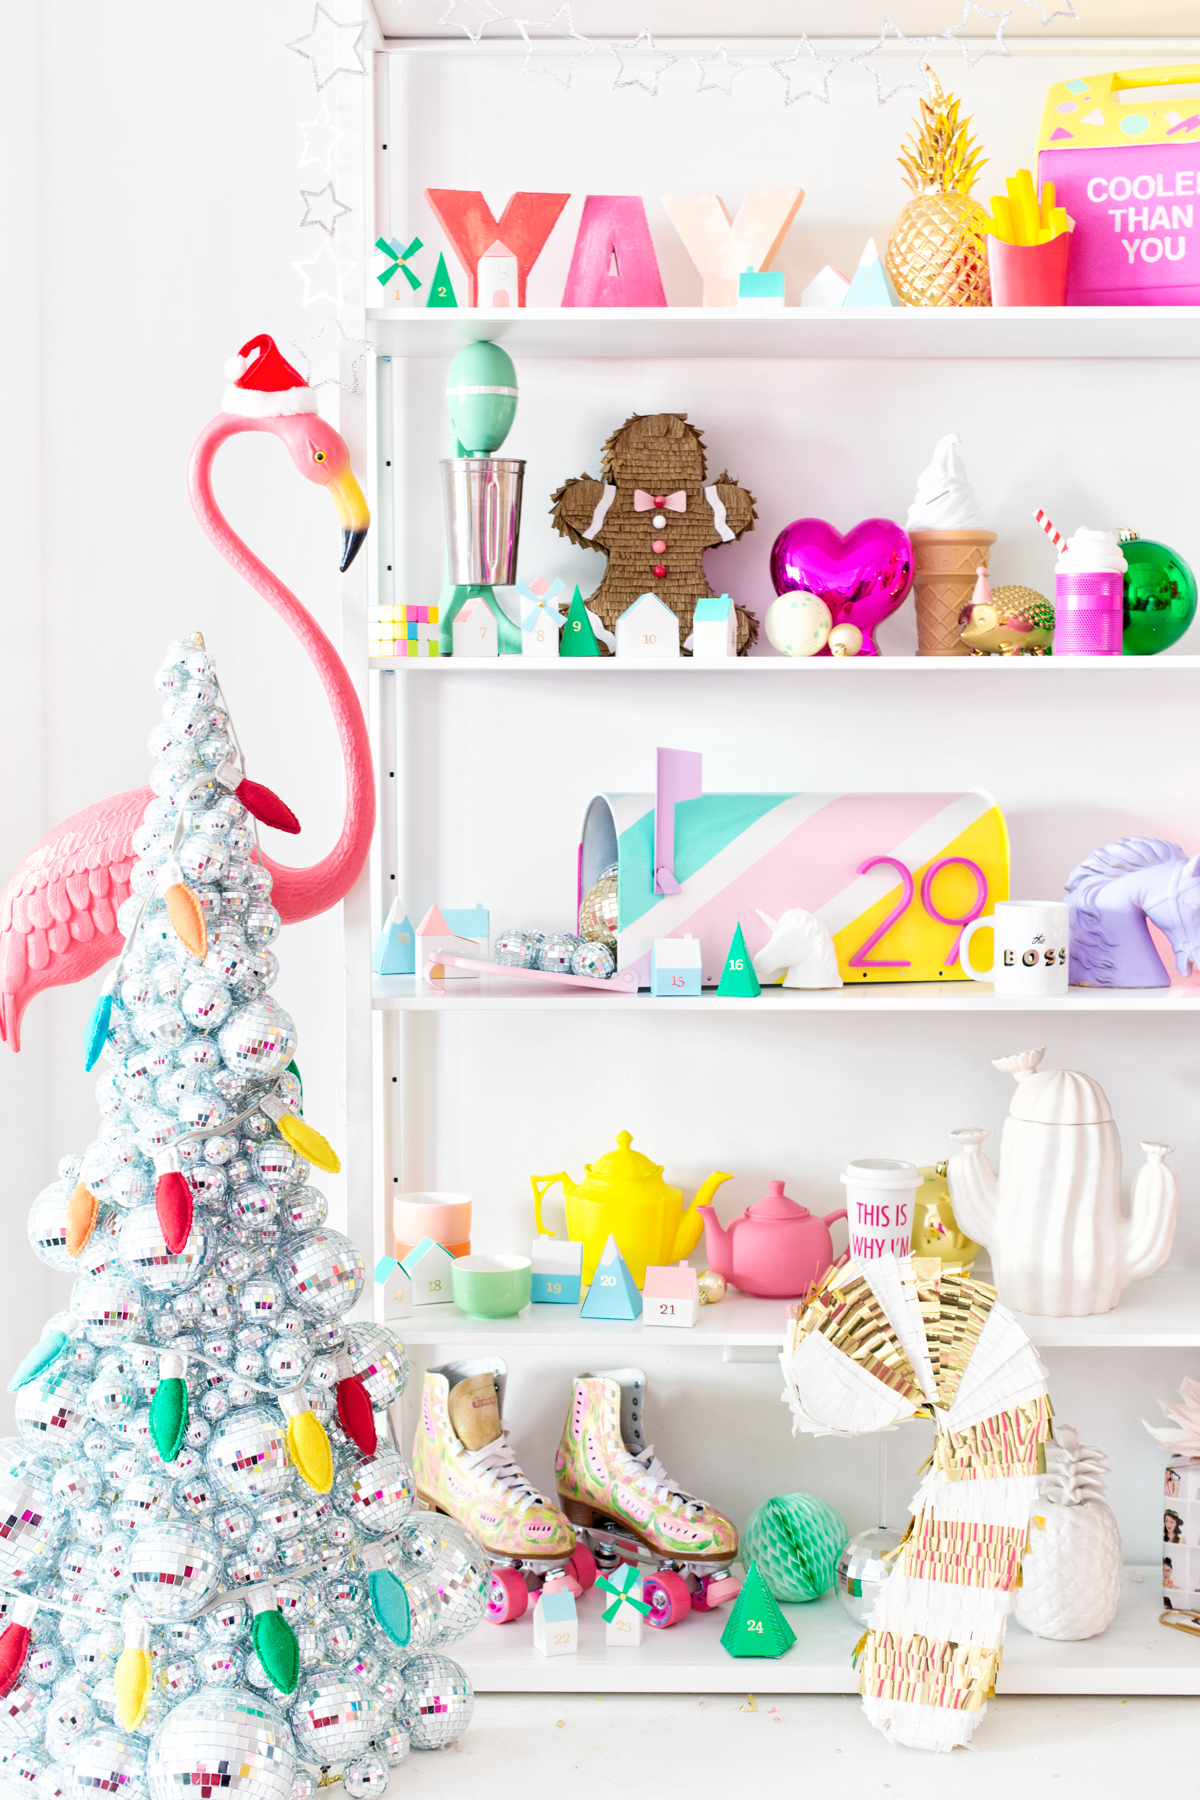 How We\'re Decorating The Studio For Christmas! - Studio DIY